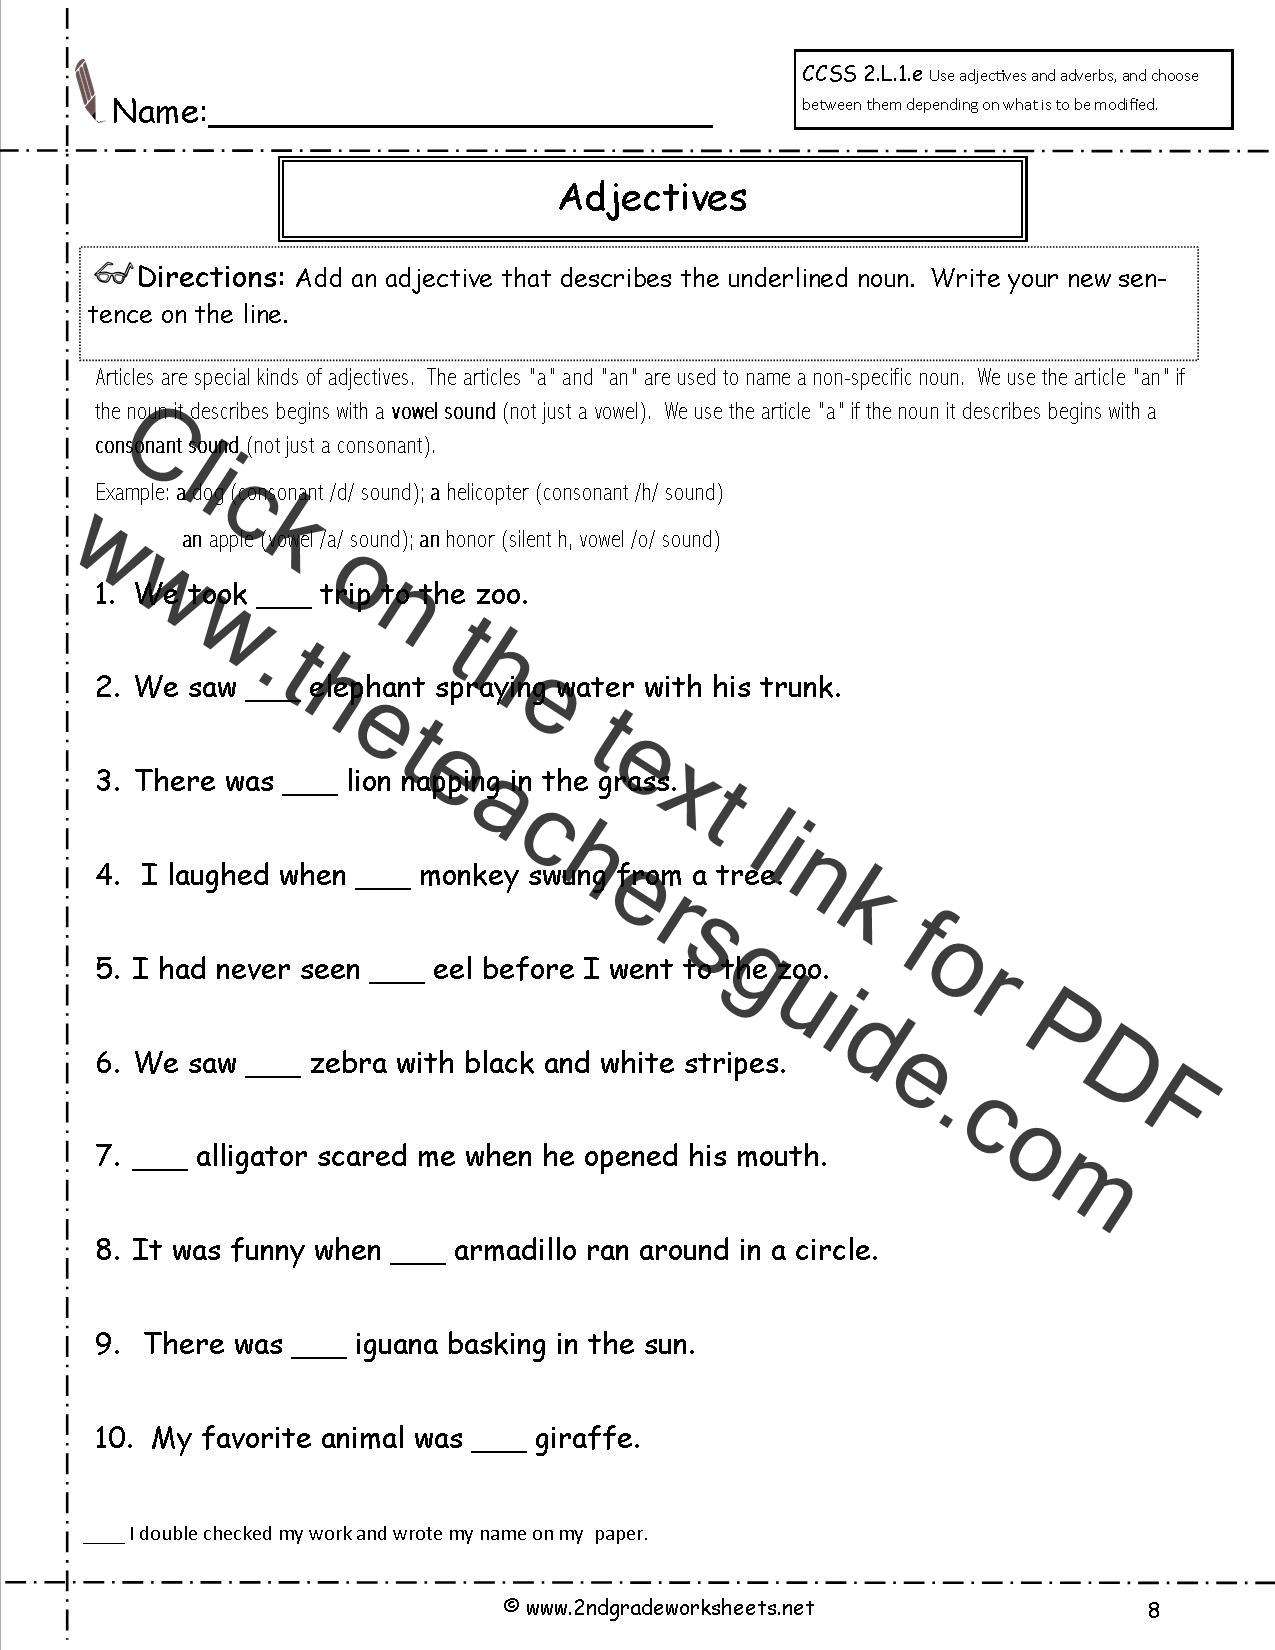 Worksheet Grammar For Grade 2 free languagegrammar worksheets and printouts adjectives worksheets